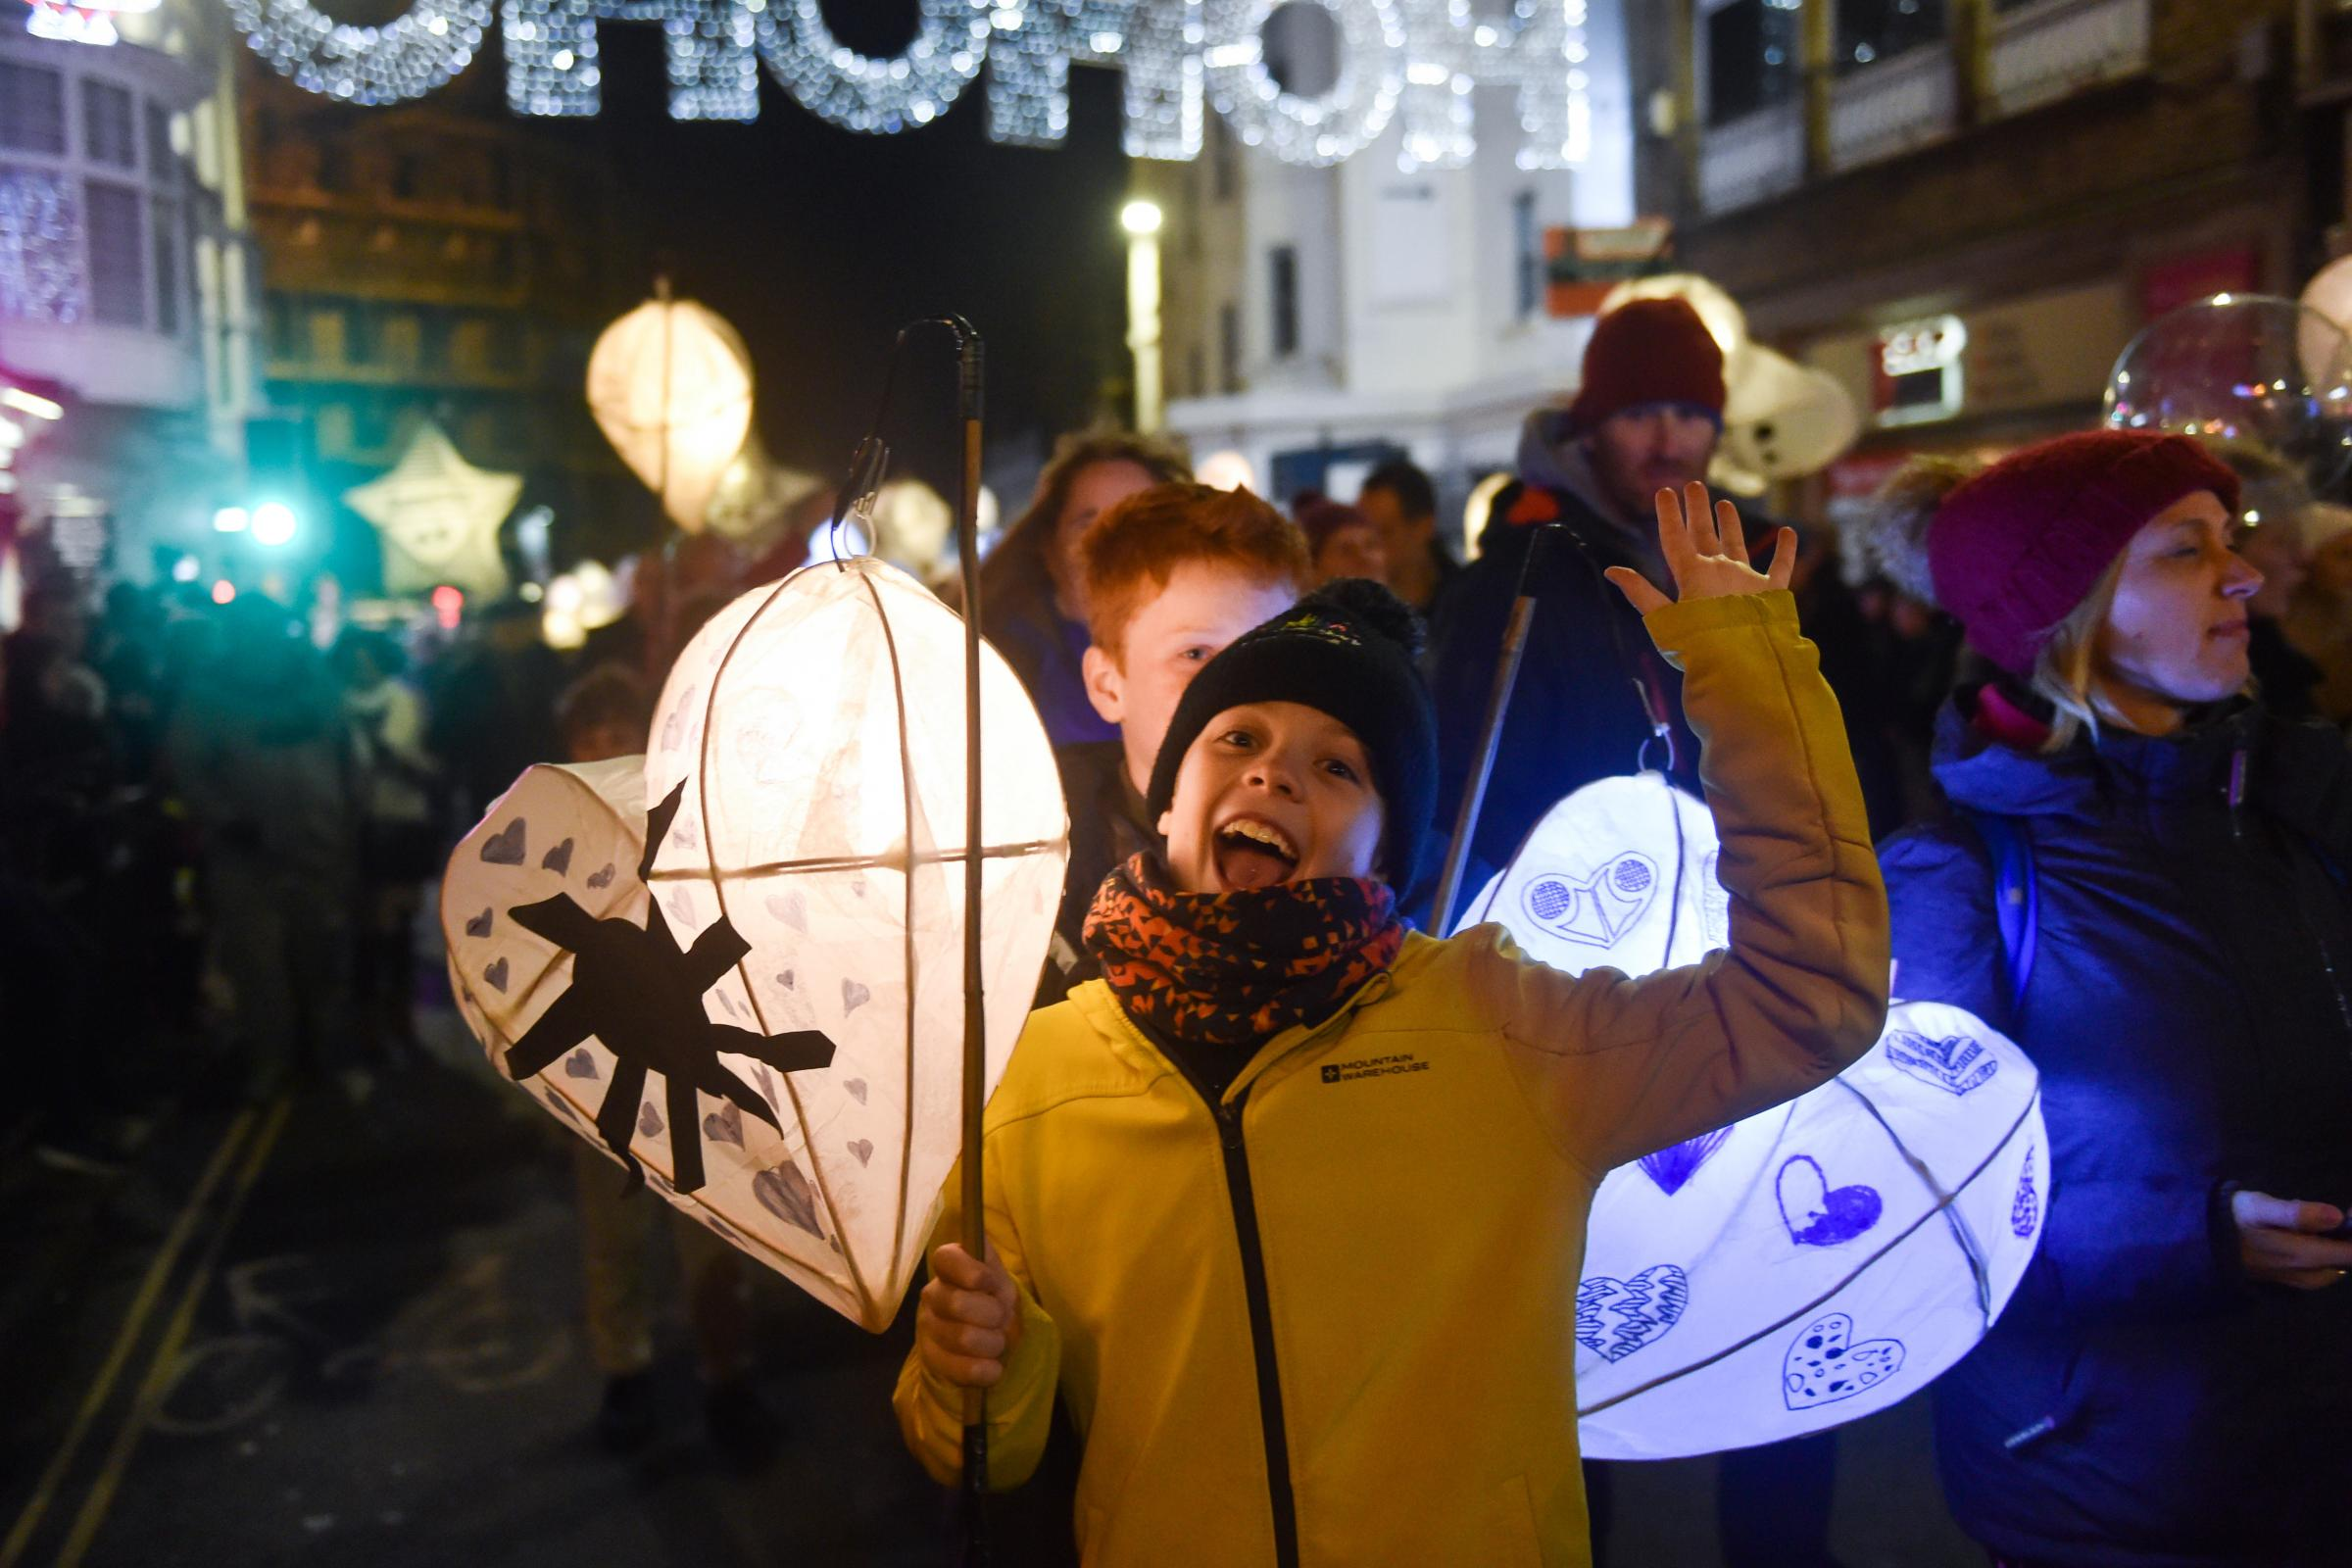 Thousands take to the streets for Burning the Clocks in Brighton | The Argus